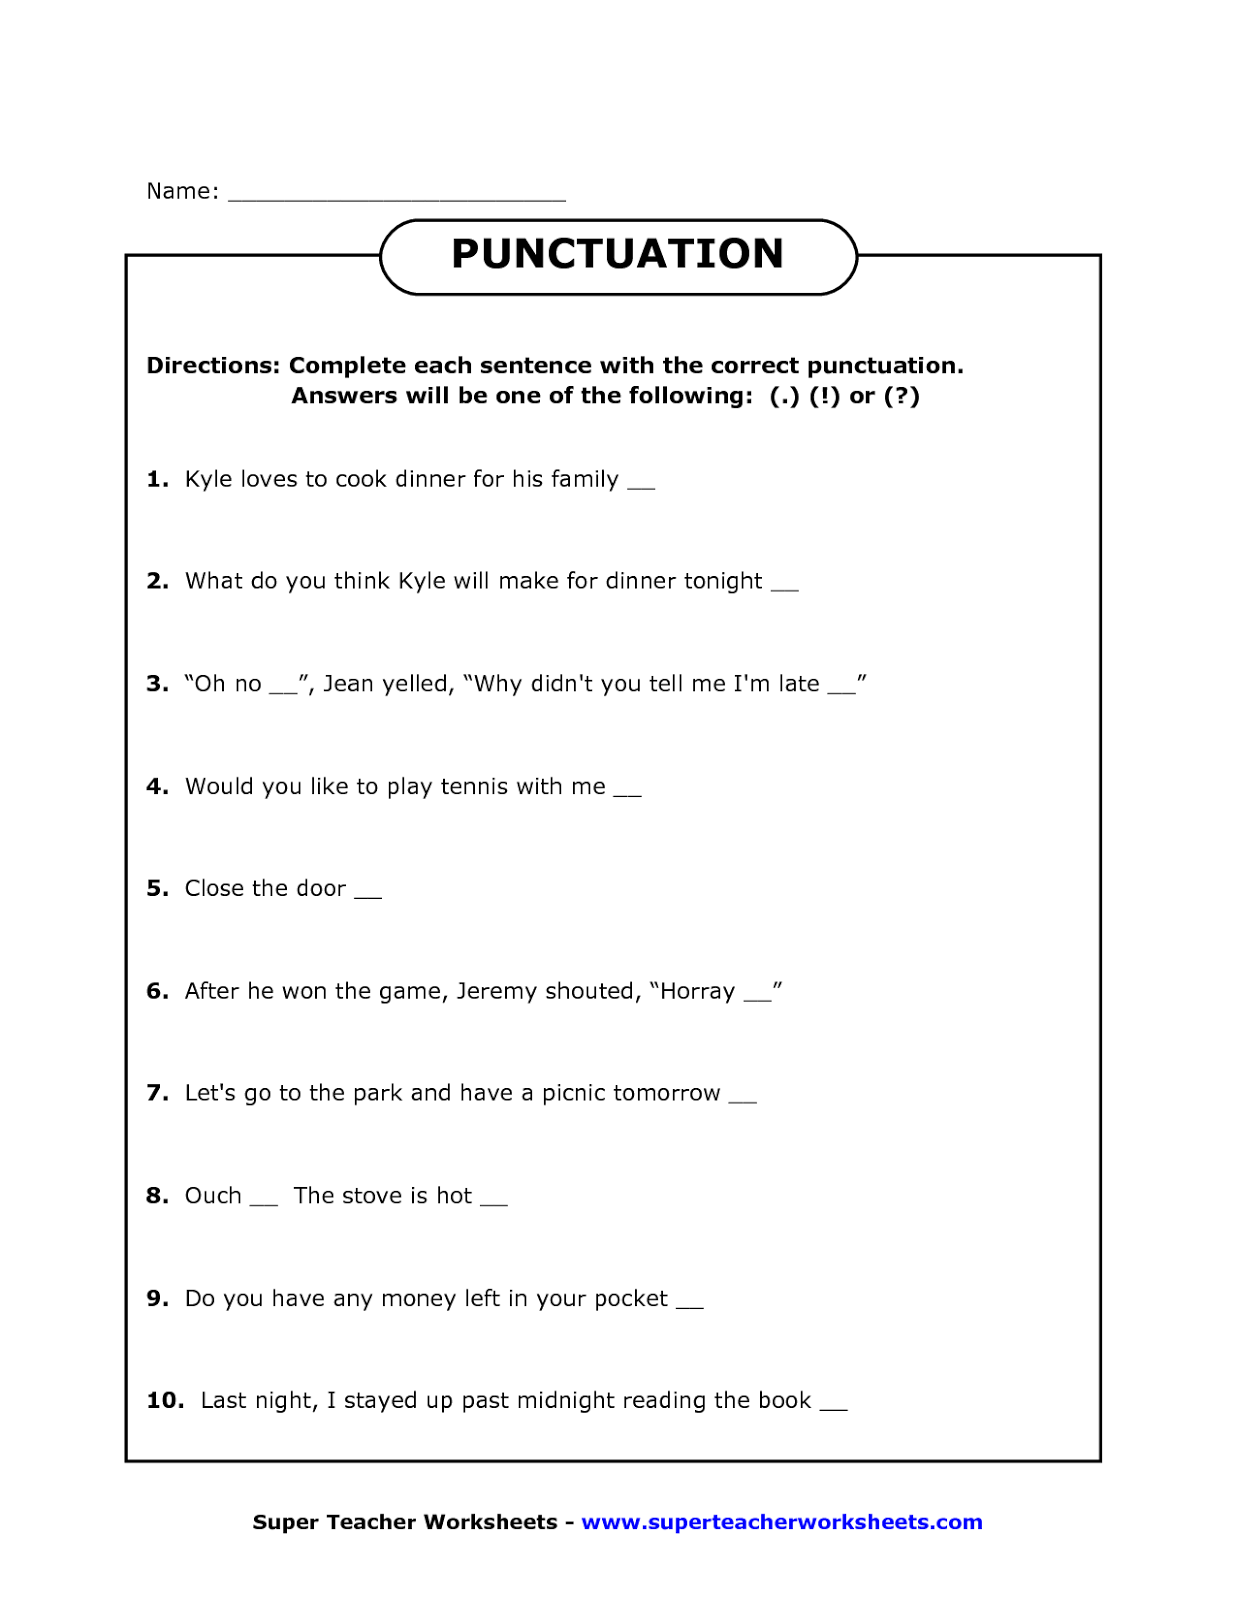 Punctuation Worksheets For Grade 4